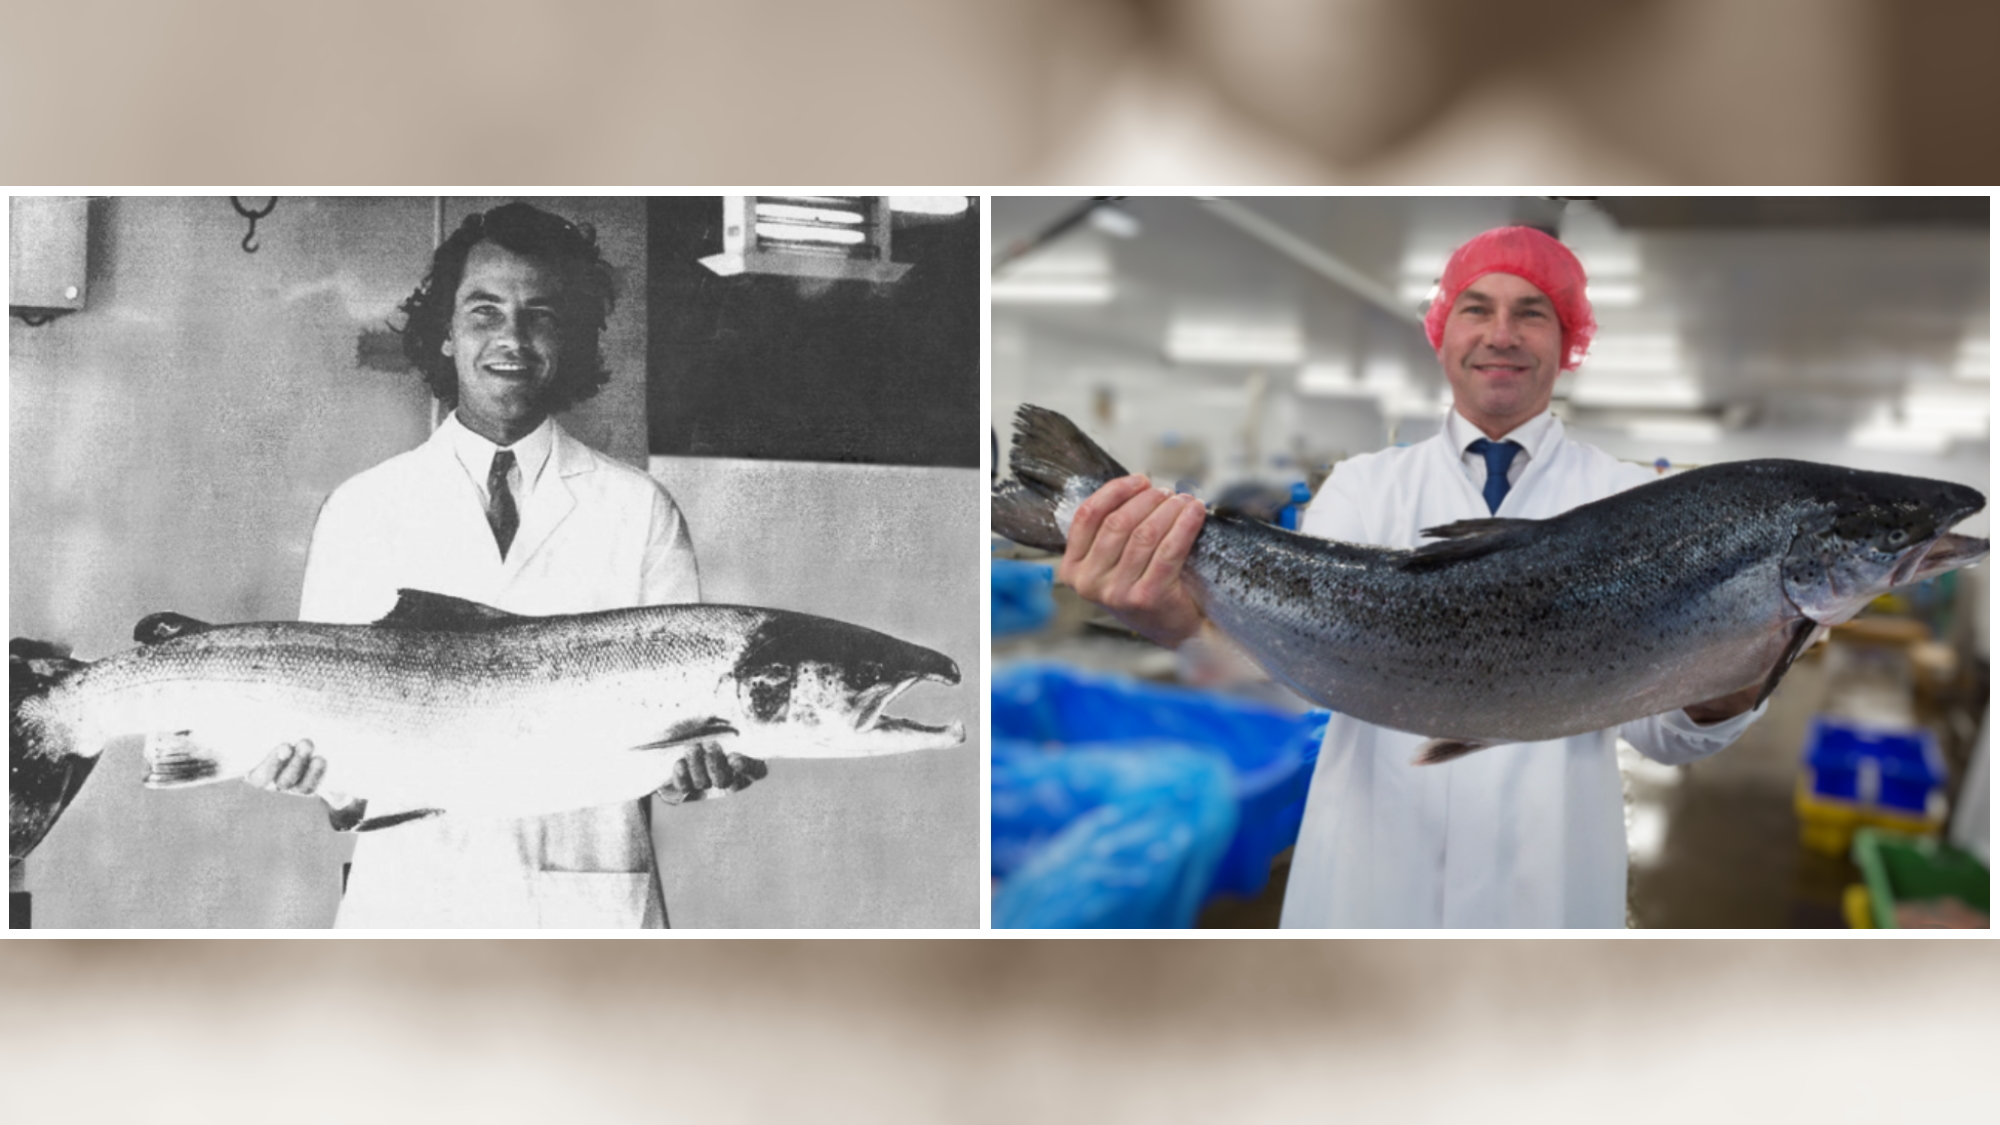 Our founder Andy celebrates 44 years in seafood today